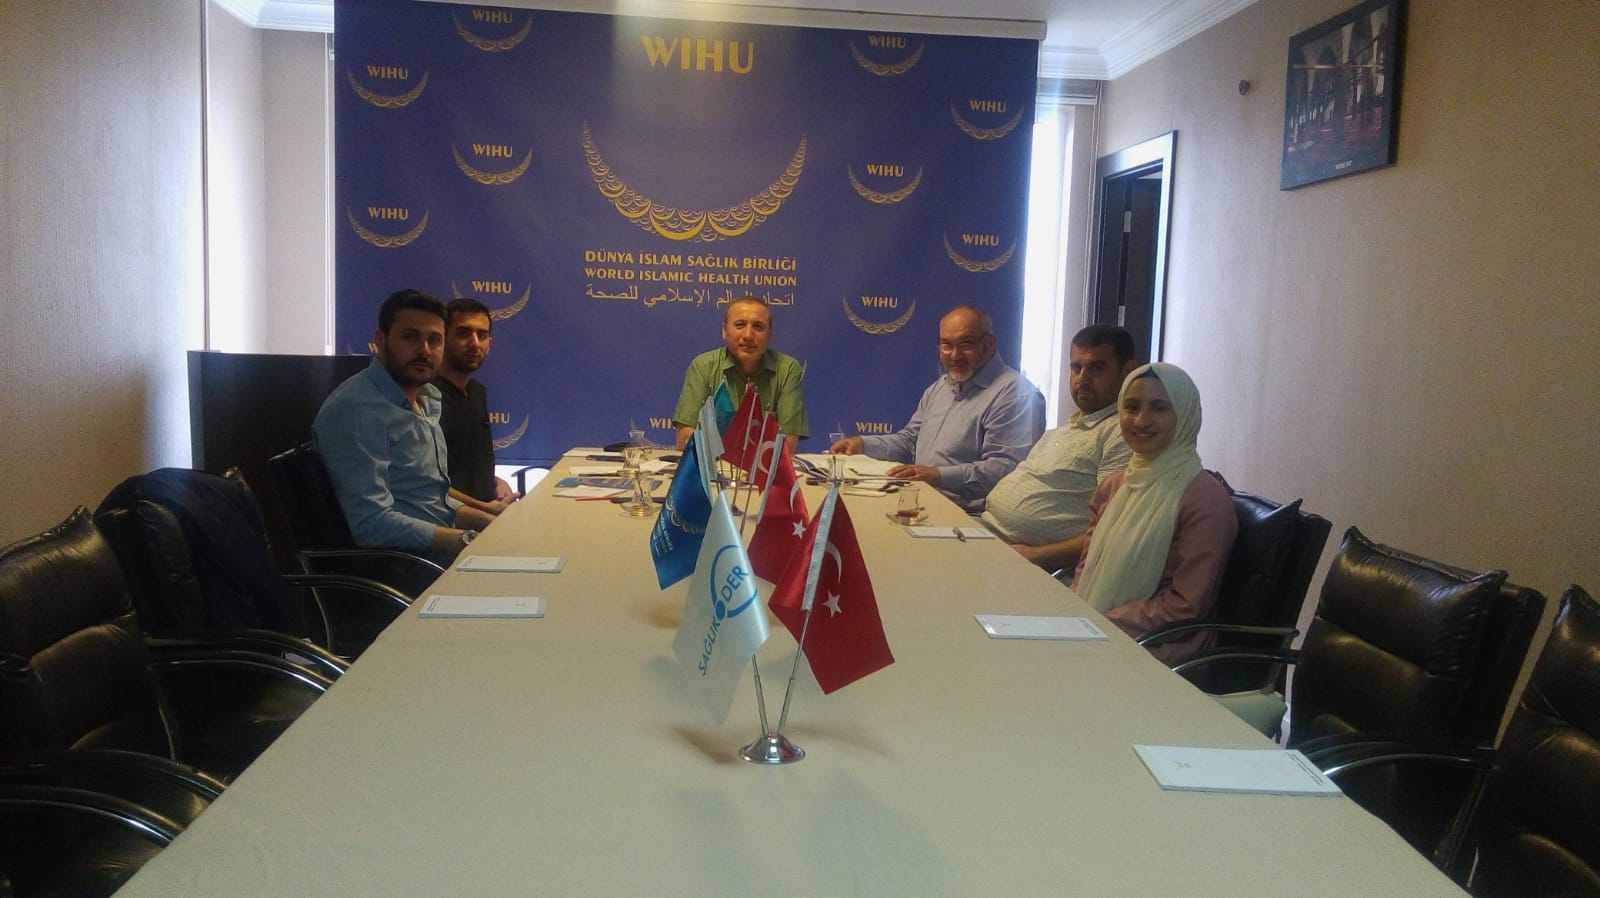 From Afro-Asian Cooperation Council Visit To Wihu